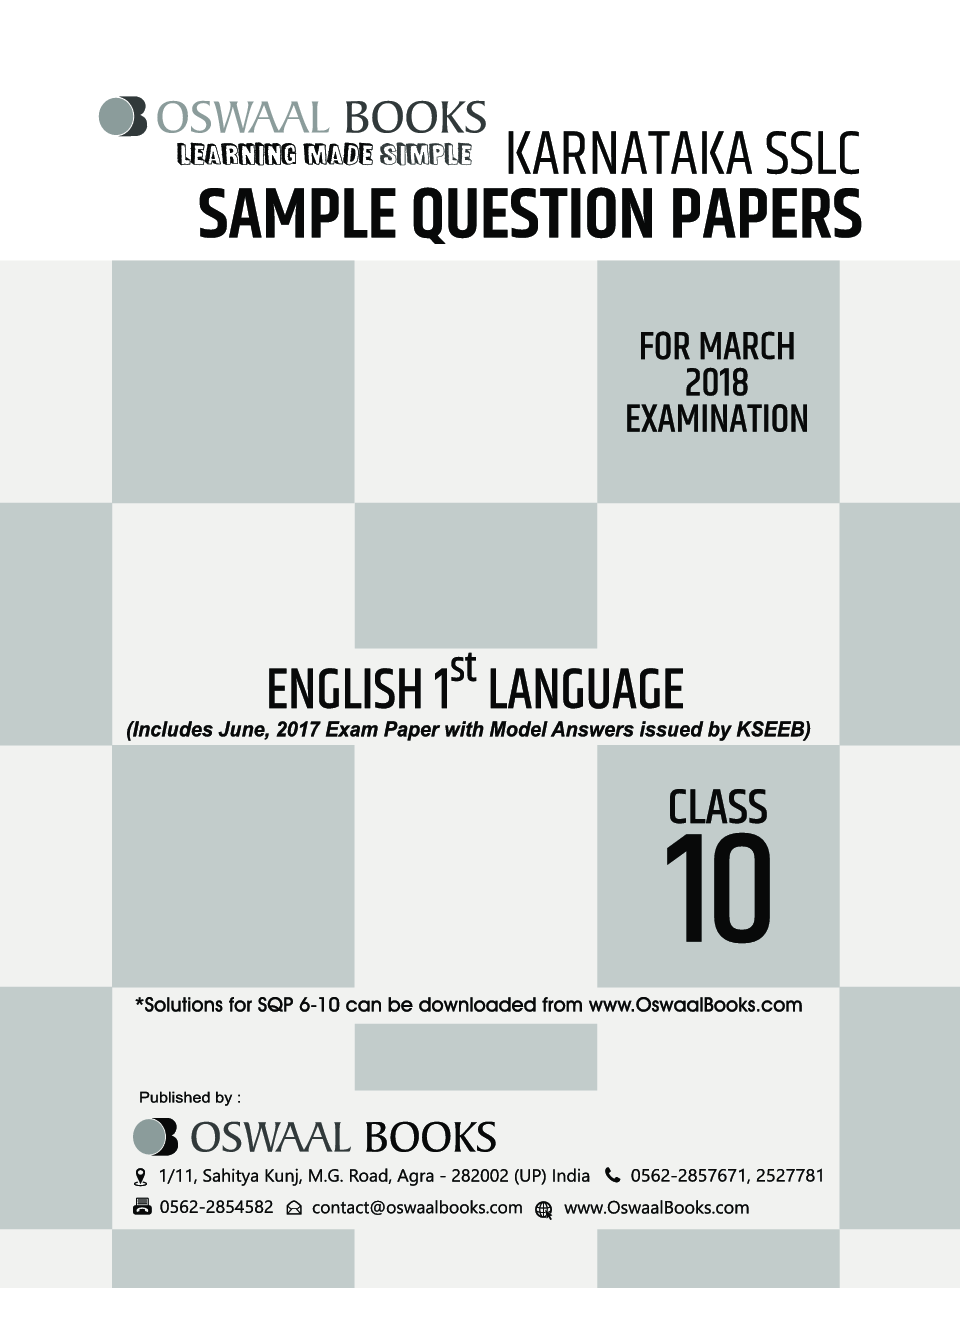 Oswaal karnataka sslc sample question papers for class x english oswaal karnataka sslc sample question papers for class x english 1st language march 2018 exam by panel of experts malvernweather Choice Image